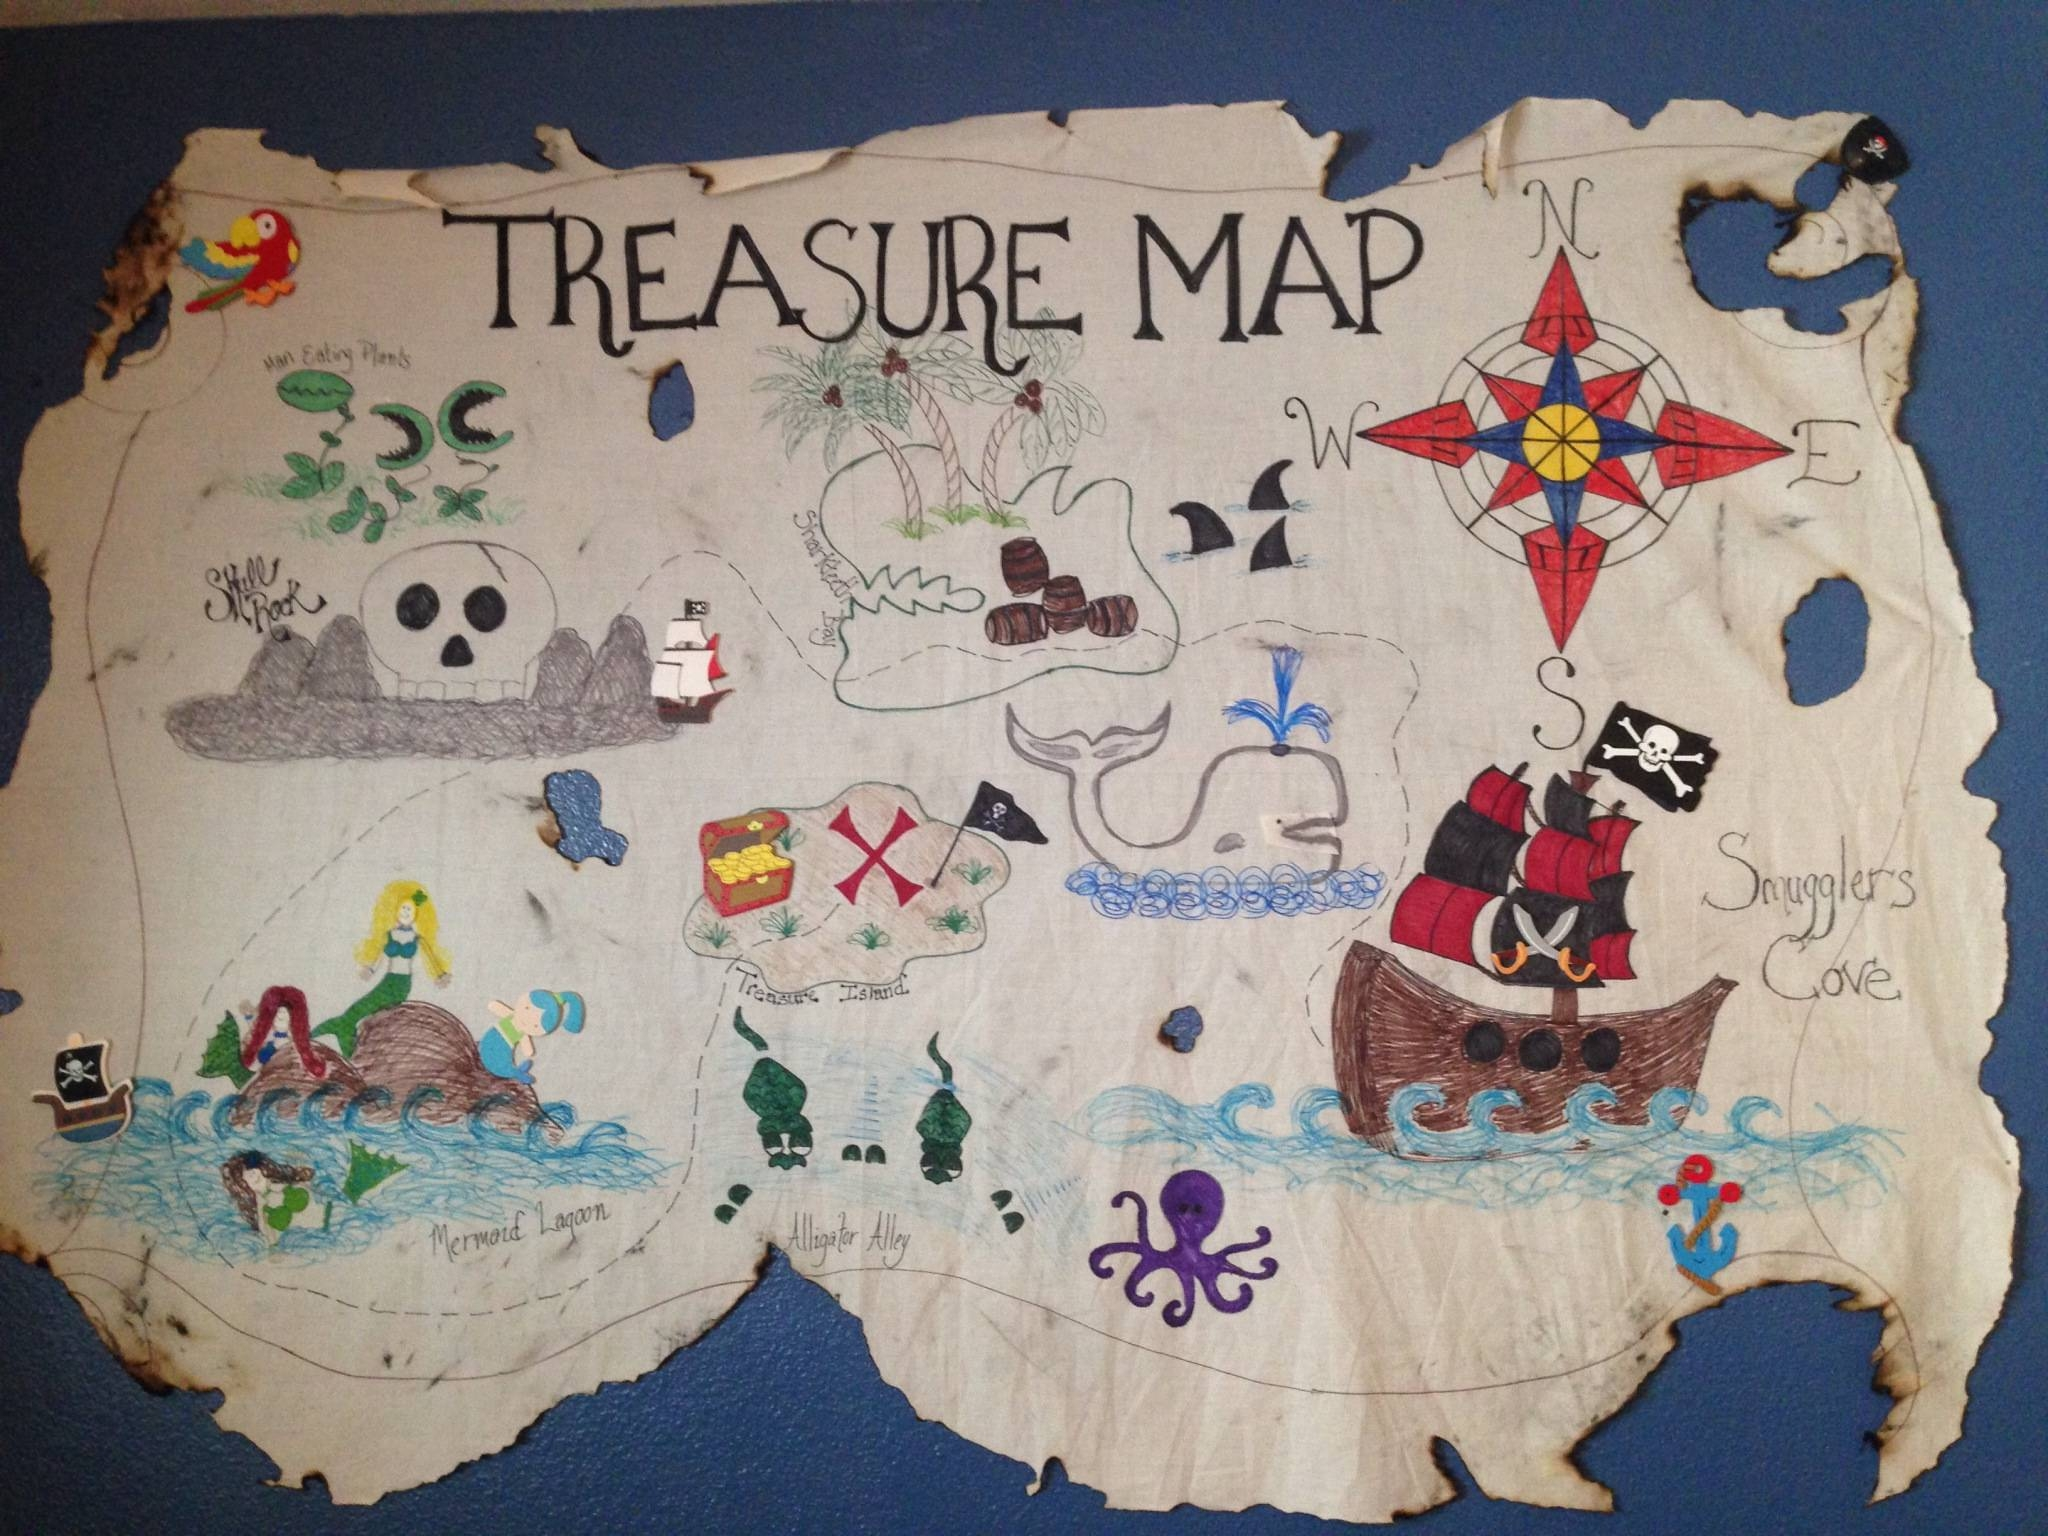 Treasure Map | The Multitasking Mommy Intended For Latest Treasure Map Wall Art (View 17 of 20)